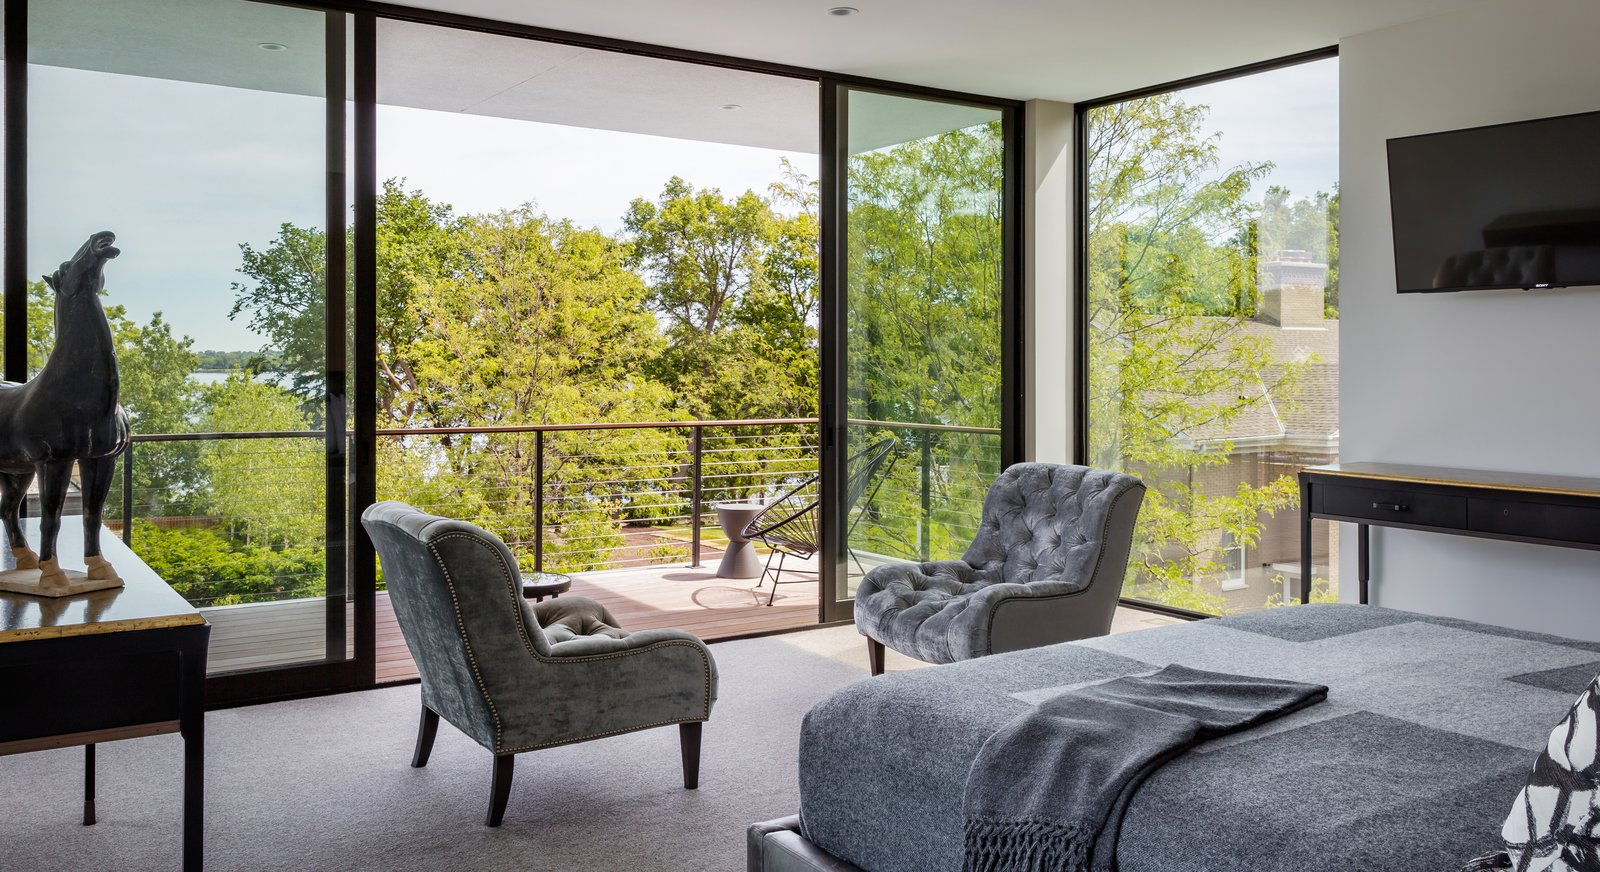 Bedroom, Bed, and Chair  Calhoun Pavilions Residence by Peterssen/Keller Architecture